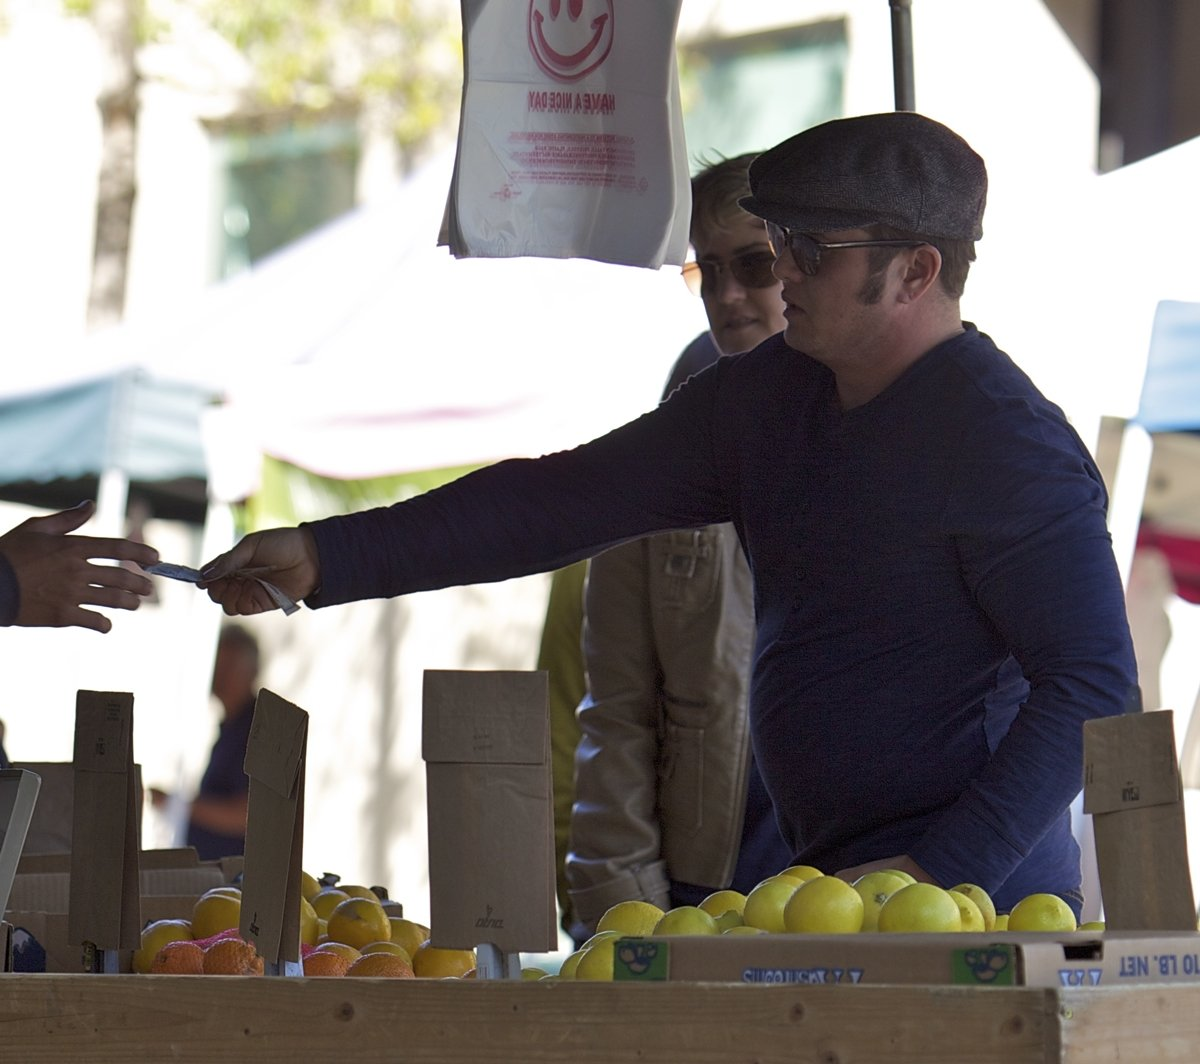 Chaz Bono buys healthy fruits and vegetables from a local farmers market